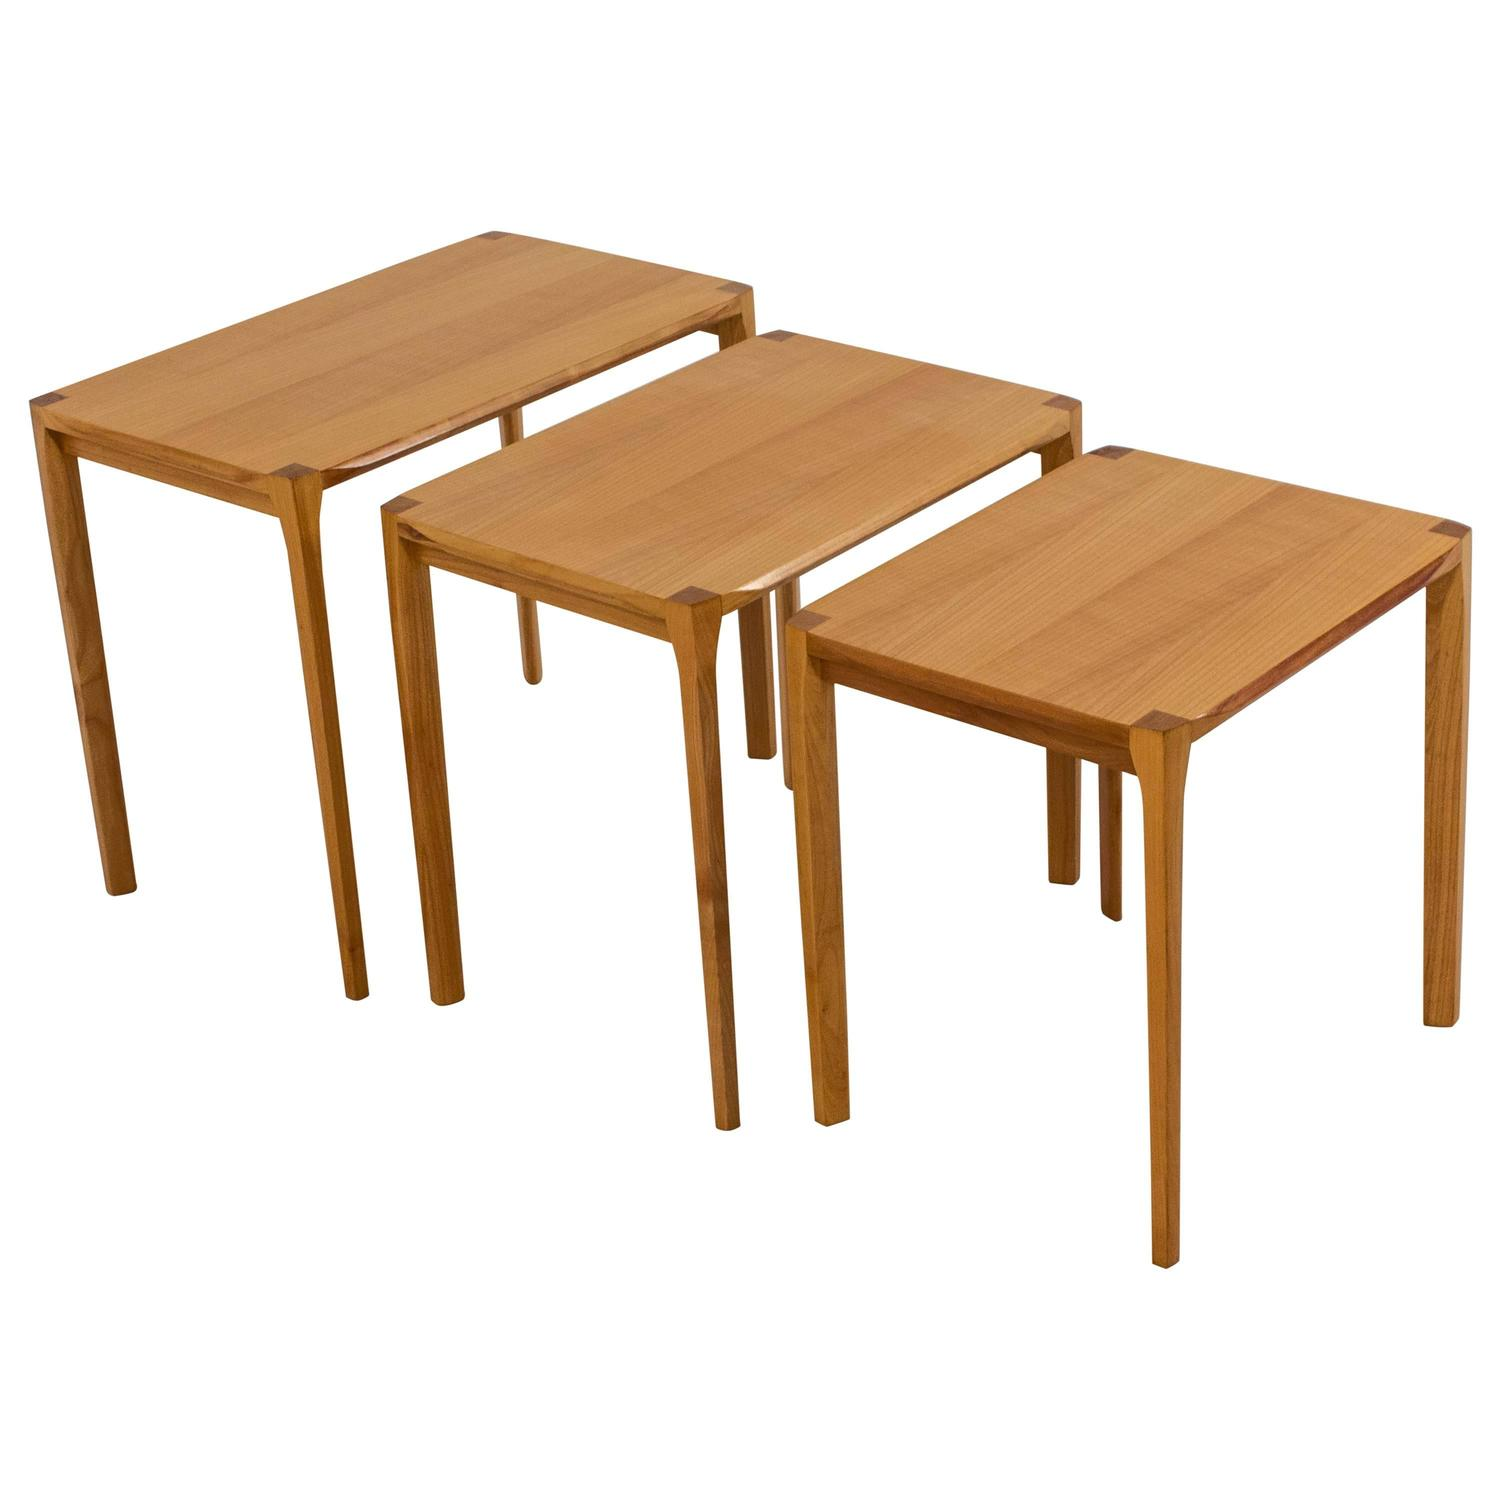 Midcentury Modern Nest of Tables By Rex Raab for Wilhelm Renz For